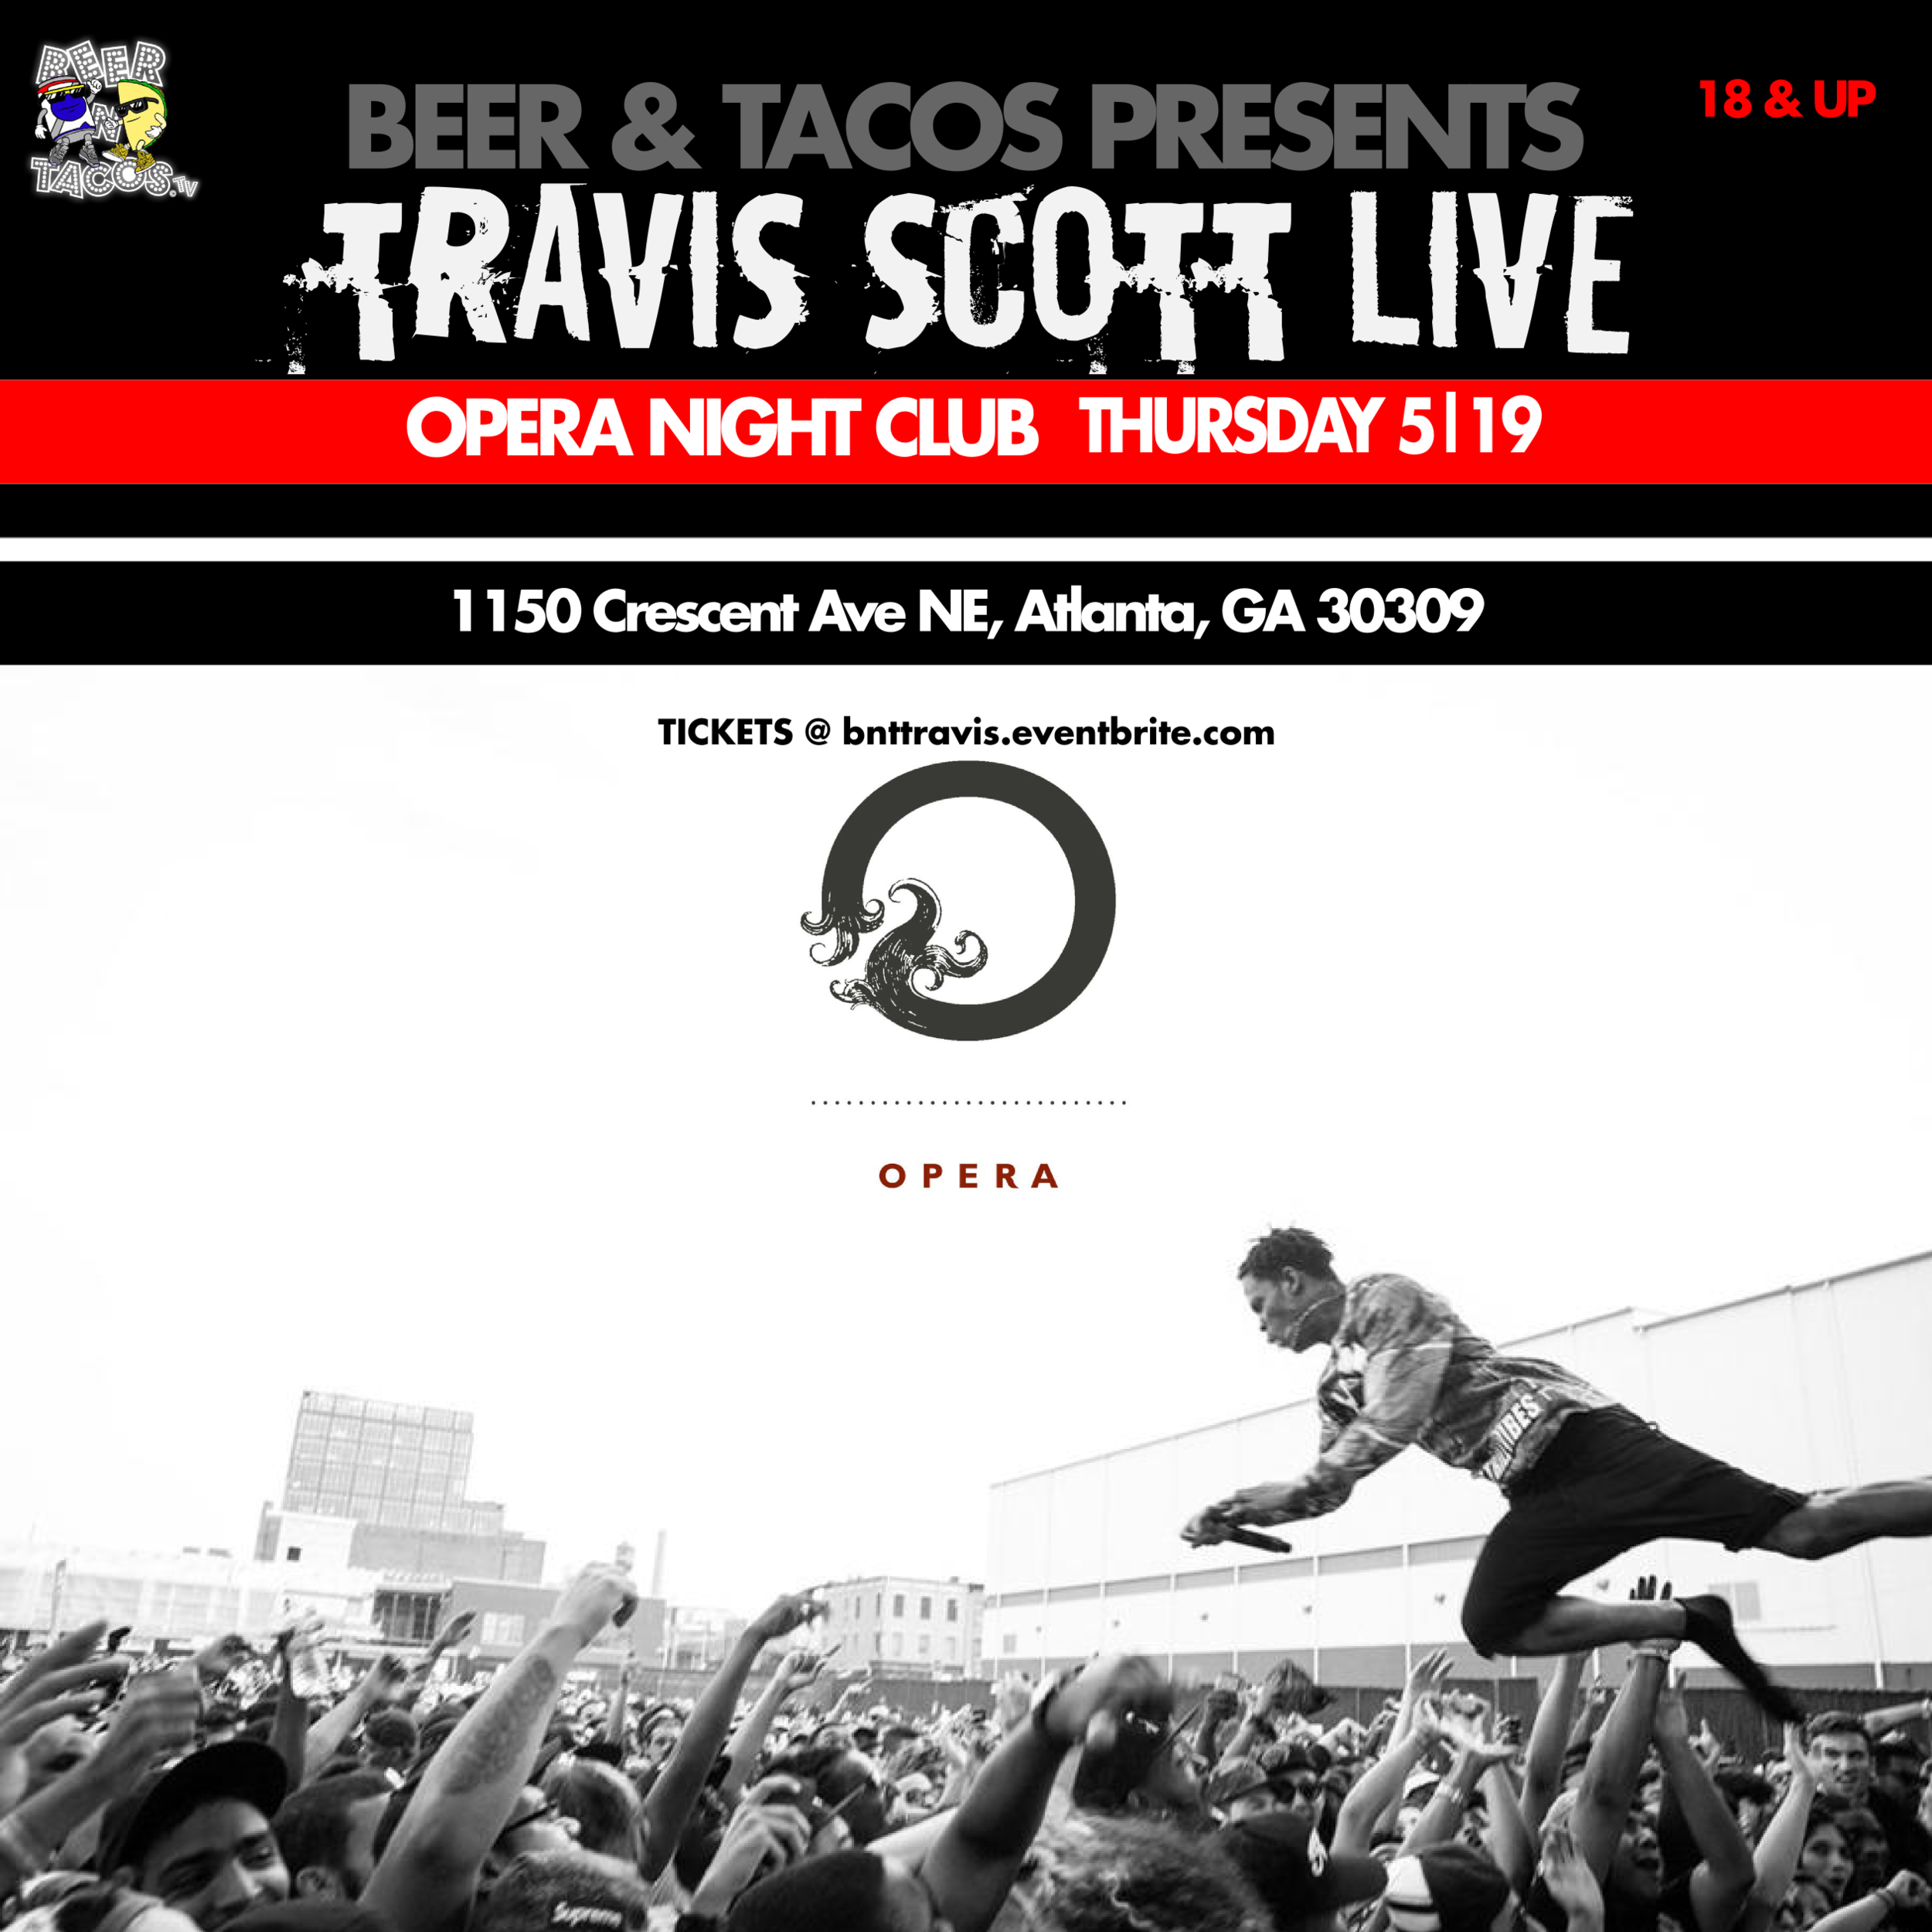 TRAVIS SCOTT LIVE BEER AND TACOS.png